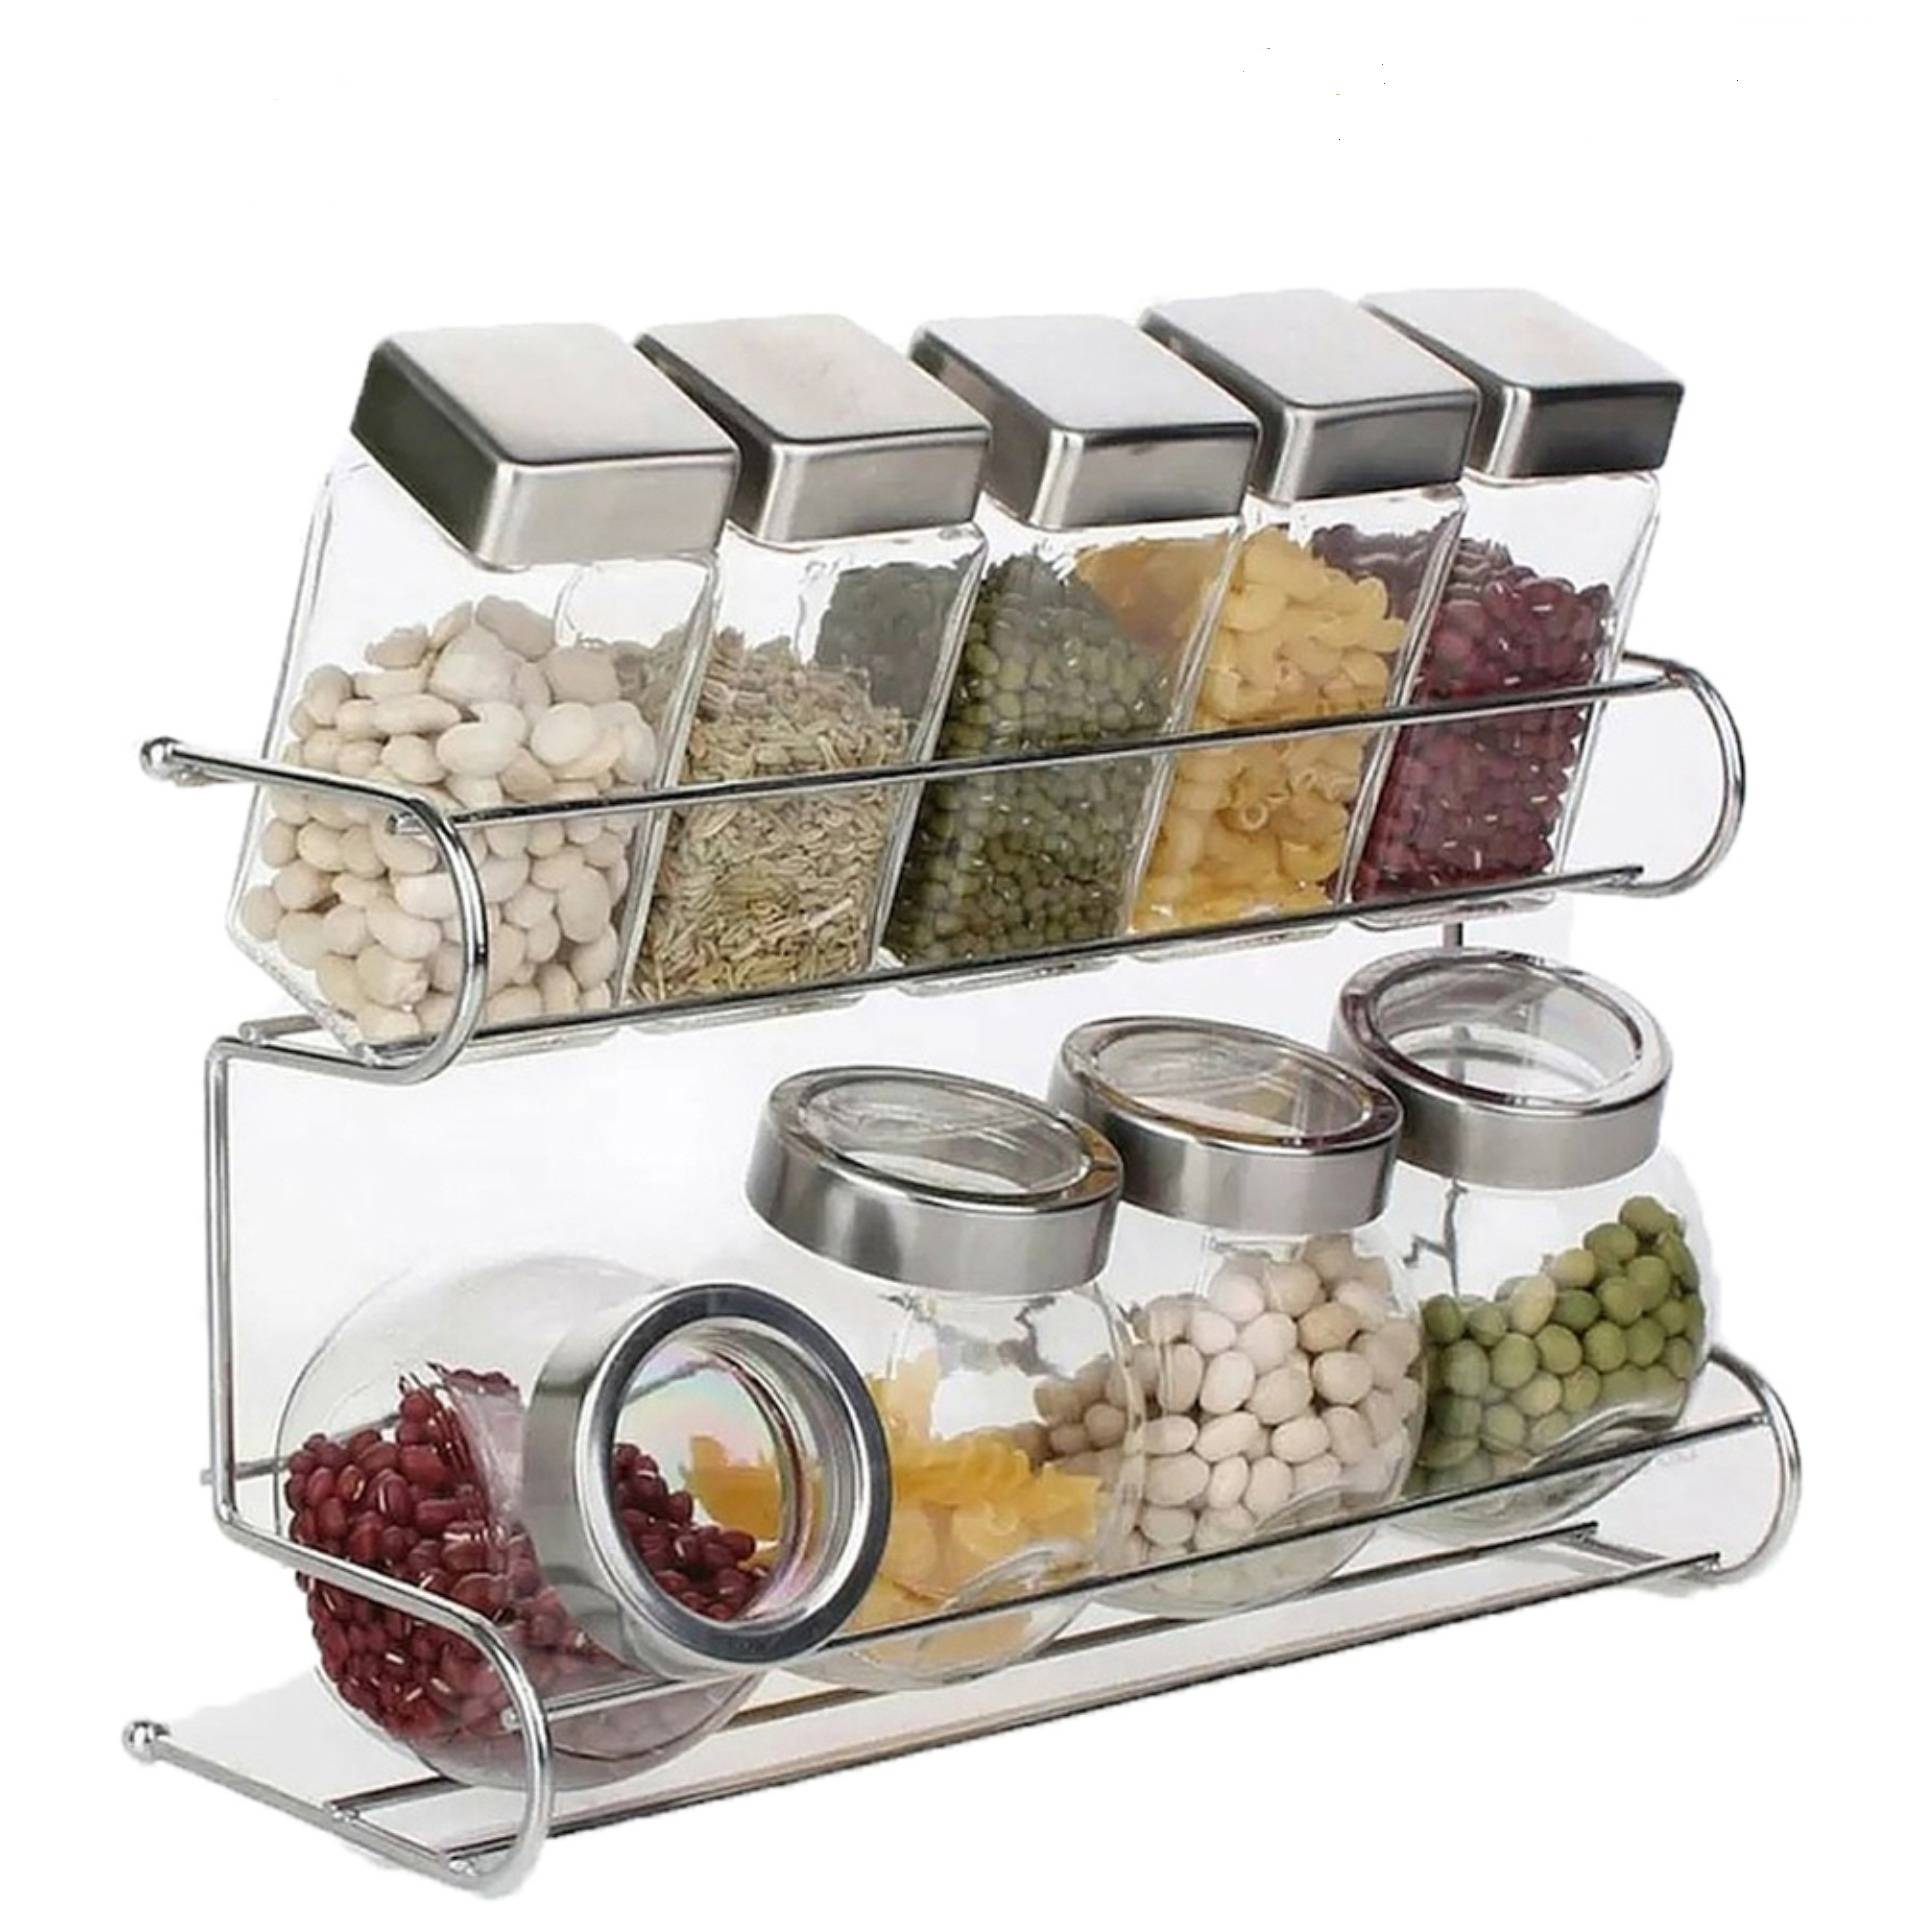 2 Tier Spice Rack With Cylindrizal Jars - DT887